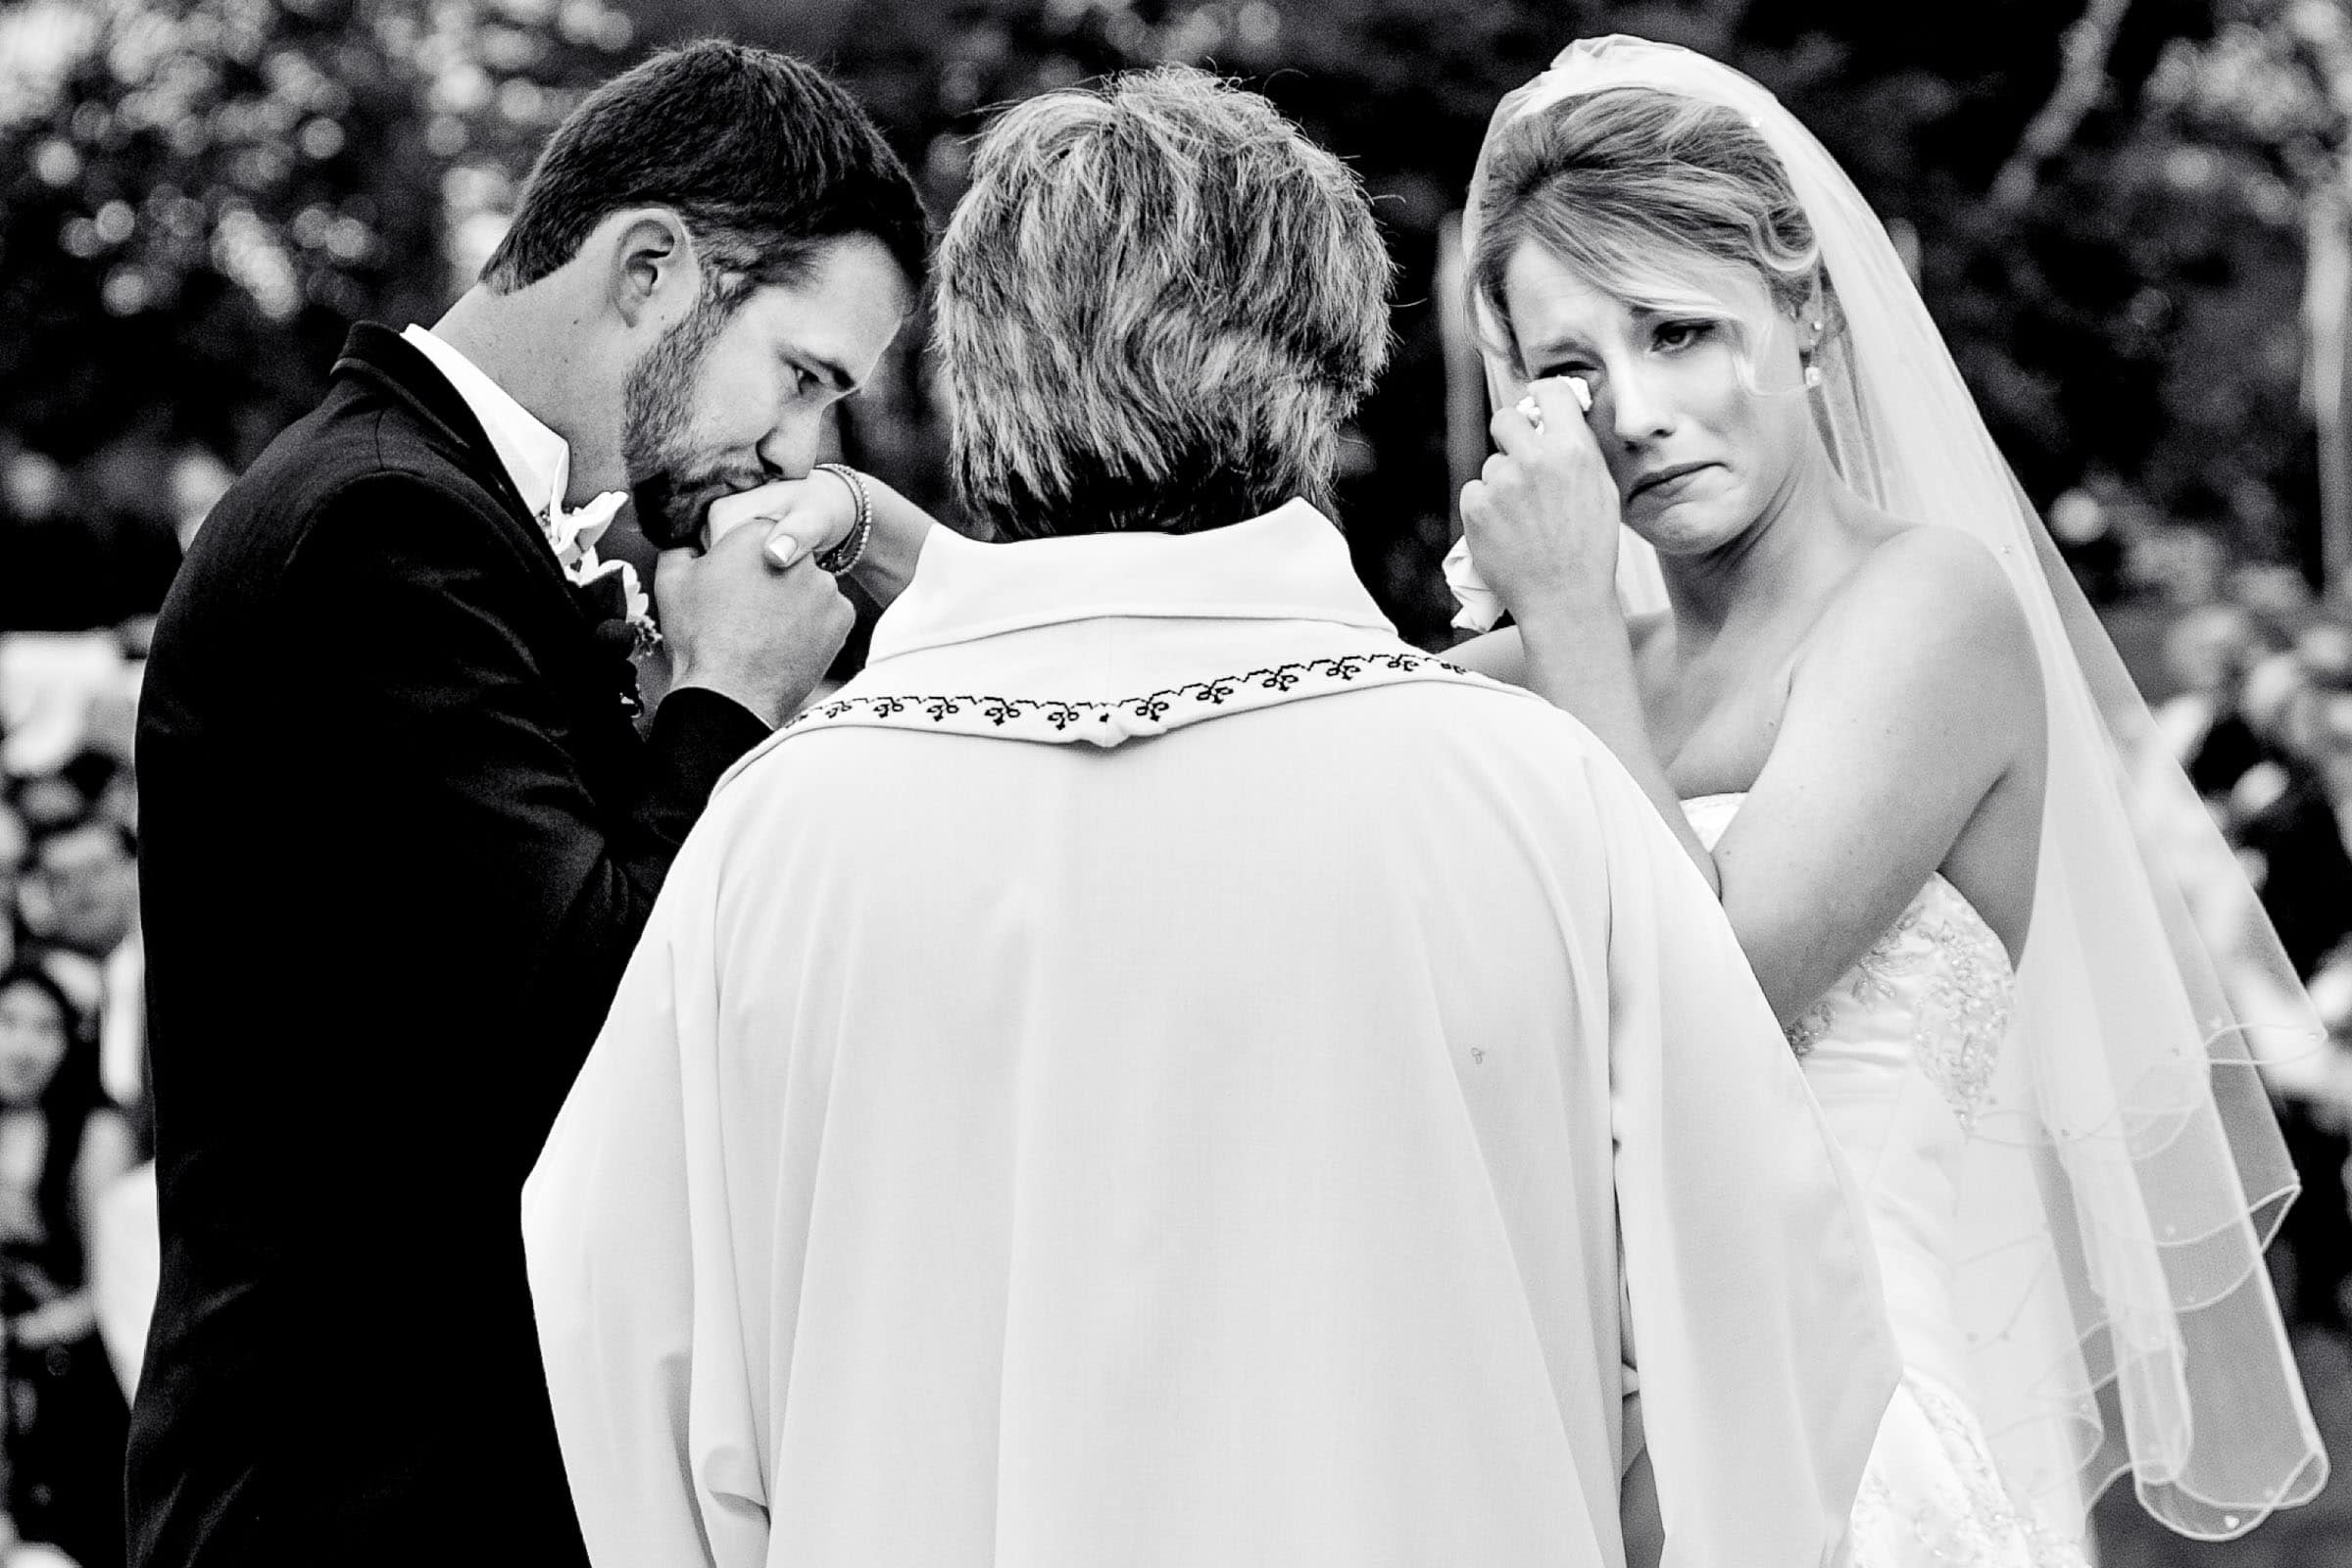 Emotional photo of a bride and groom exchanging vows during their Trapp Family Lodge wedding ceremony in Stowe, Vermont.